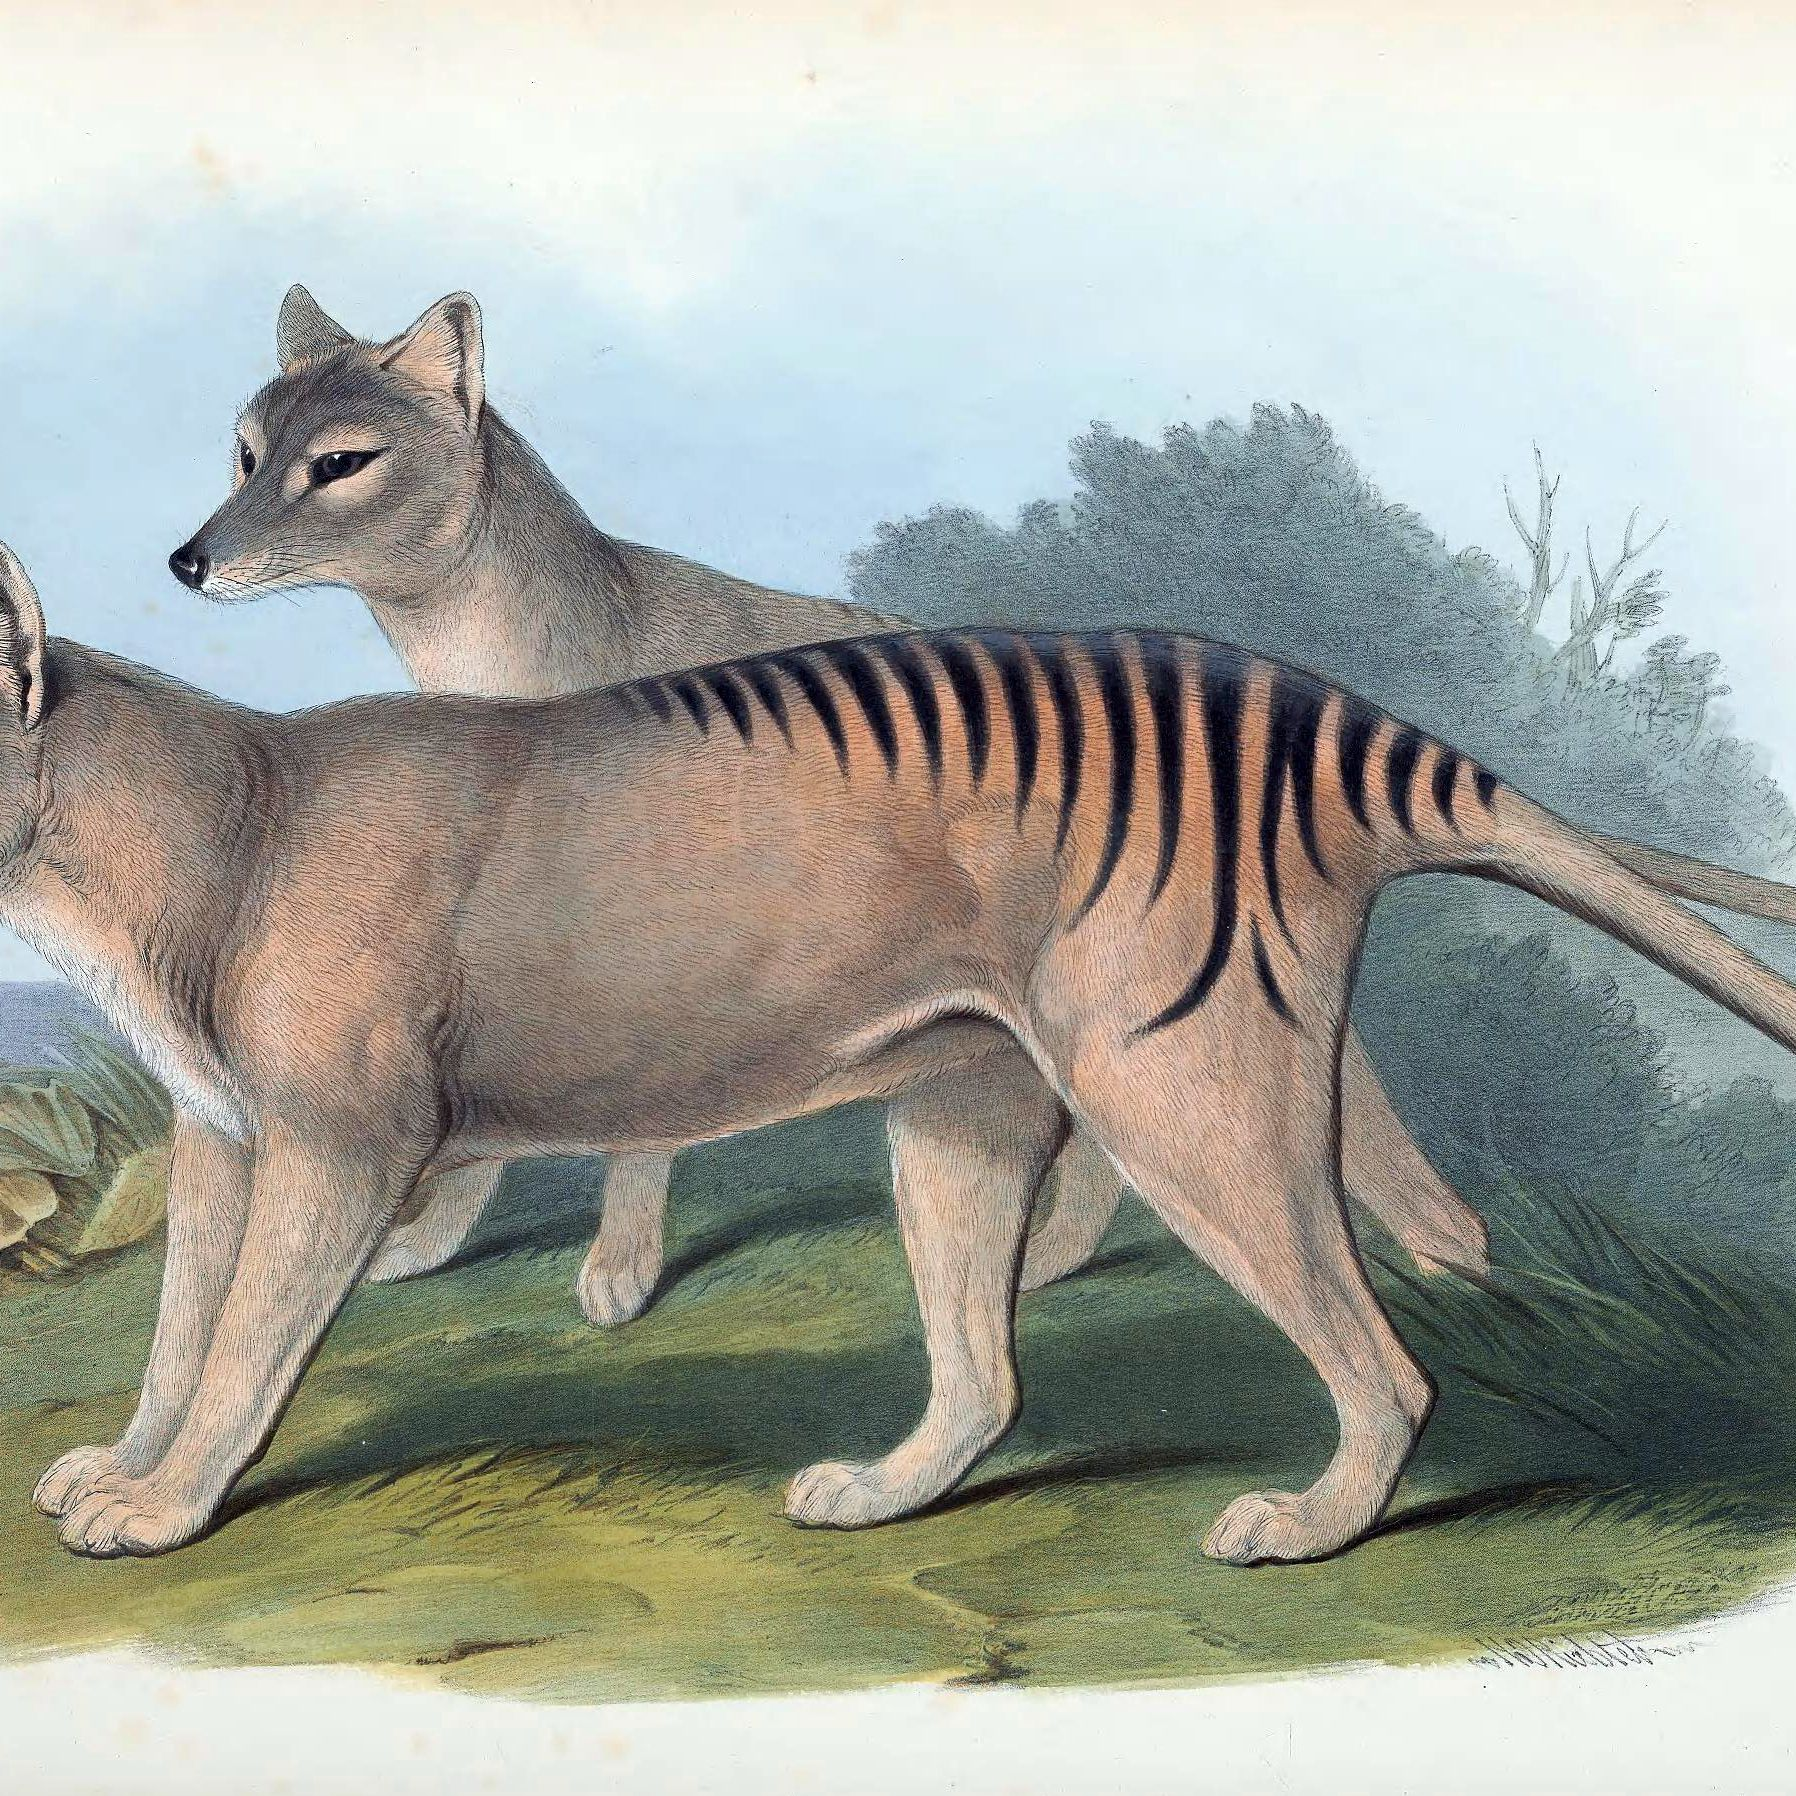 10 Facts About The Tasmanian Tiger